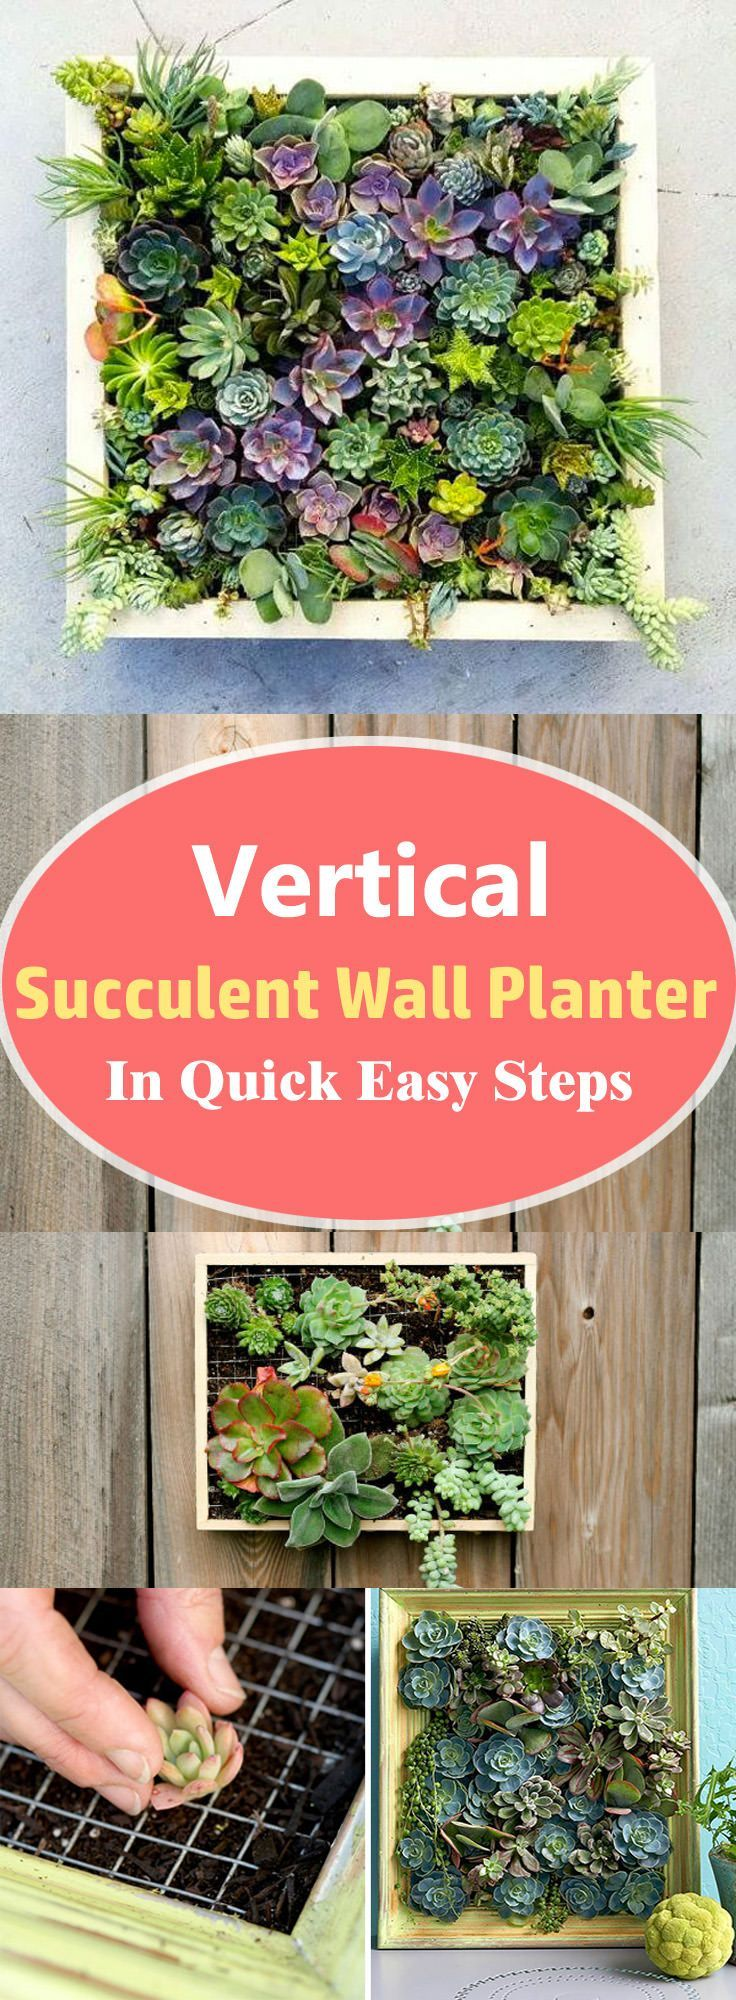 Wonderful Learn How To Make A Vertical Succulent Wall Planter In A Few Steps Without  Spending Money